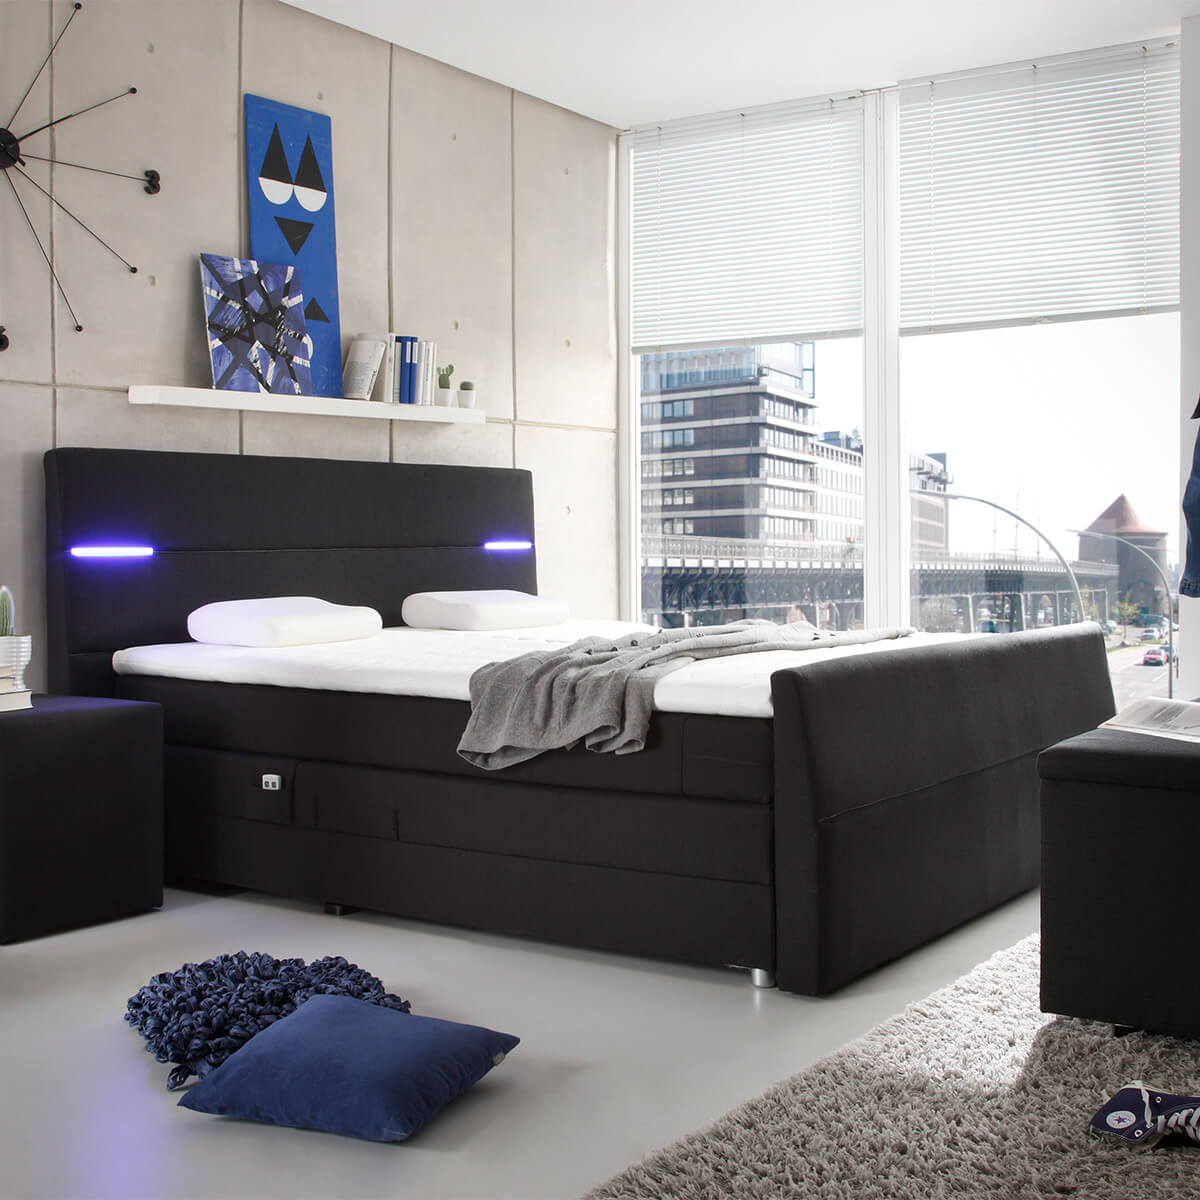 betten g nstig online kaufen dormando. Black Bedroom Furniture Sets. Home Design Ideas